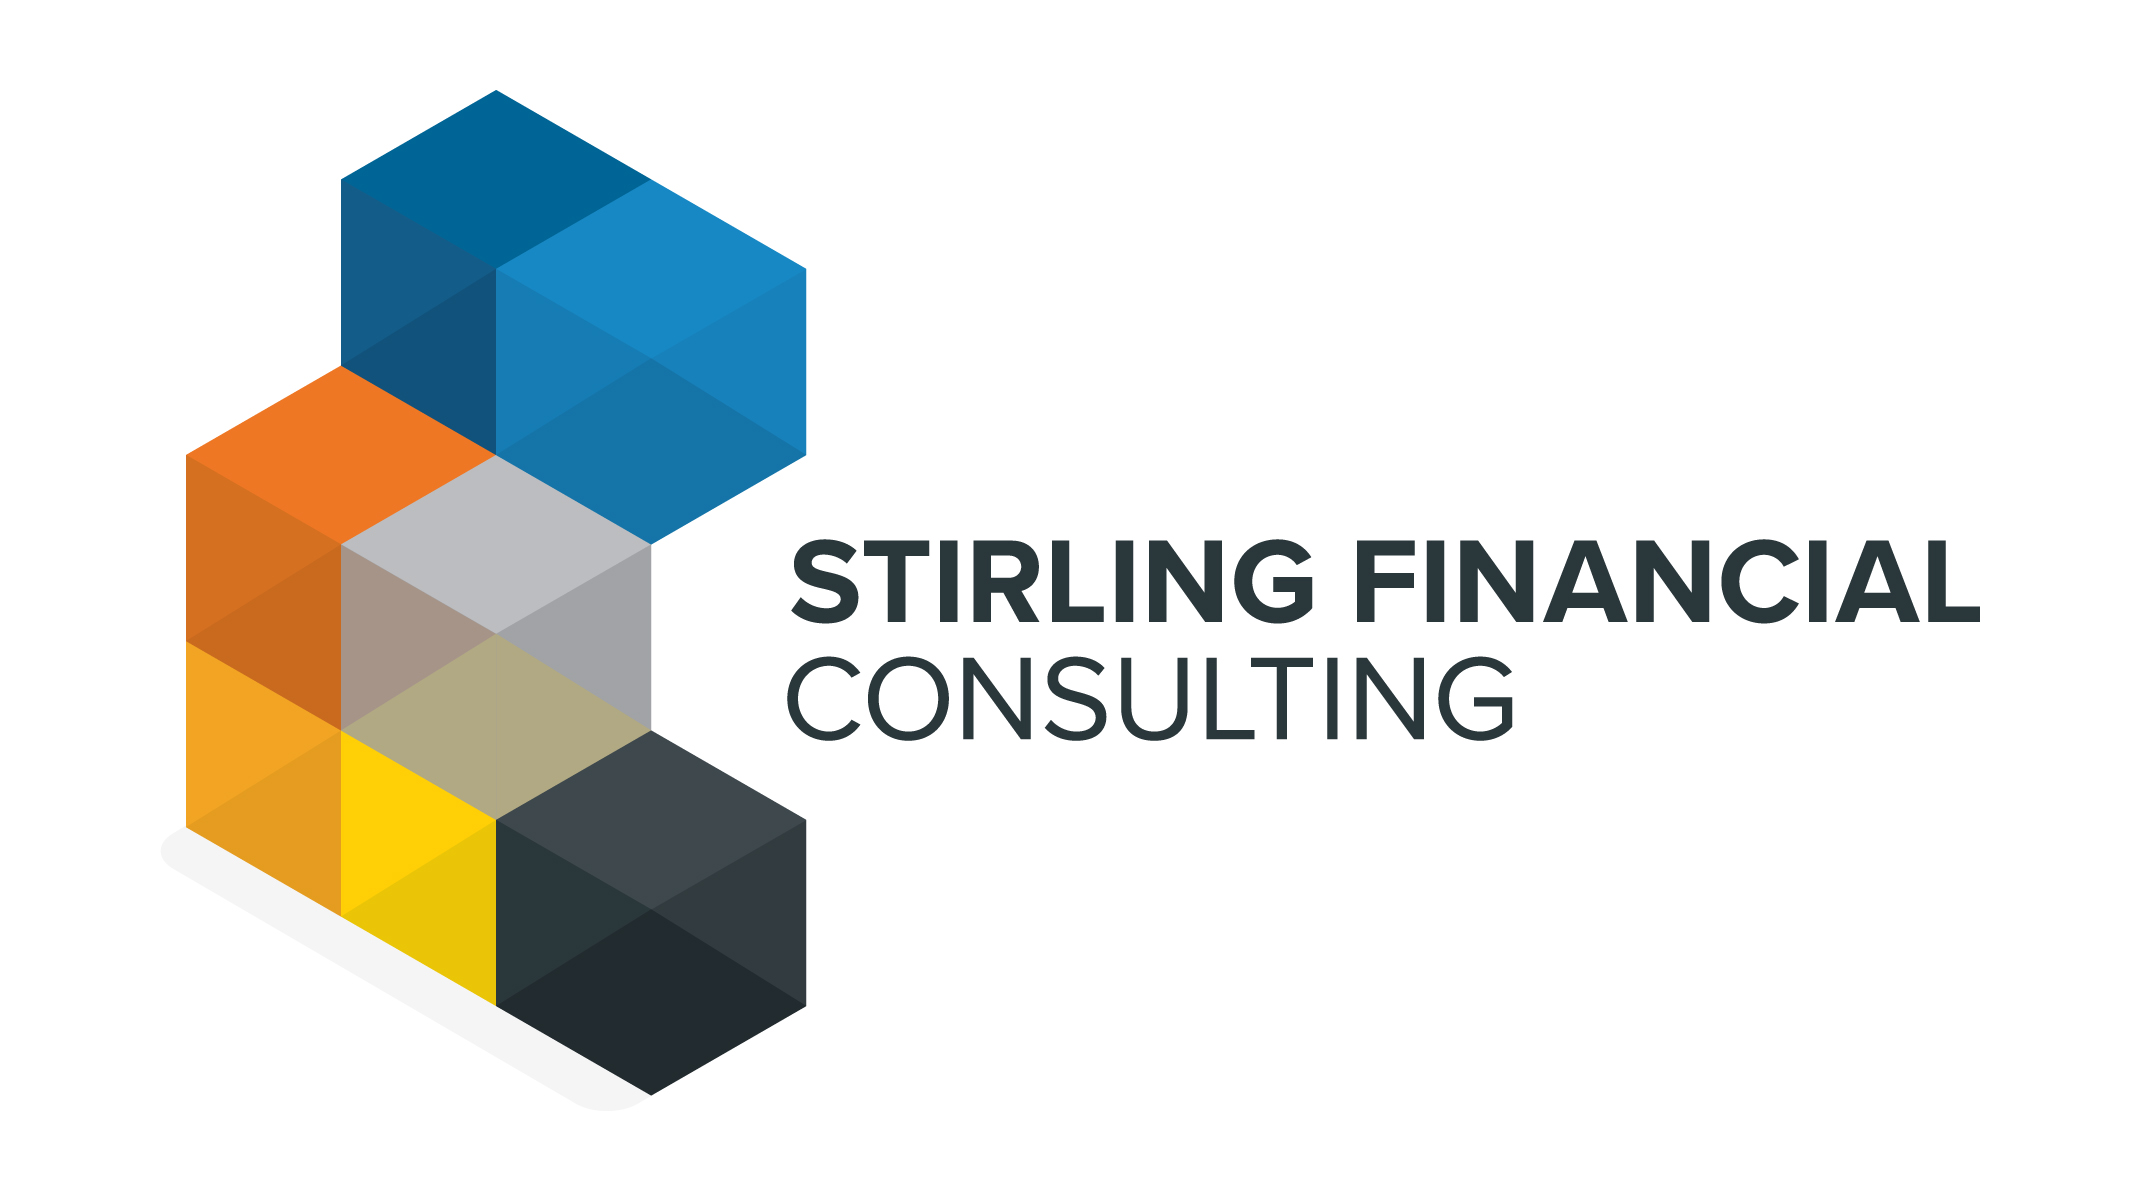 Stirling Financial Consulting